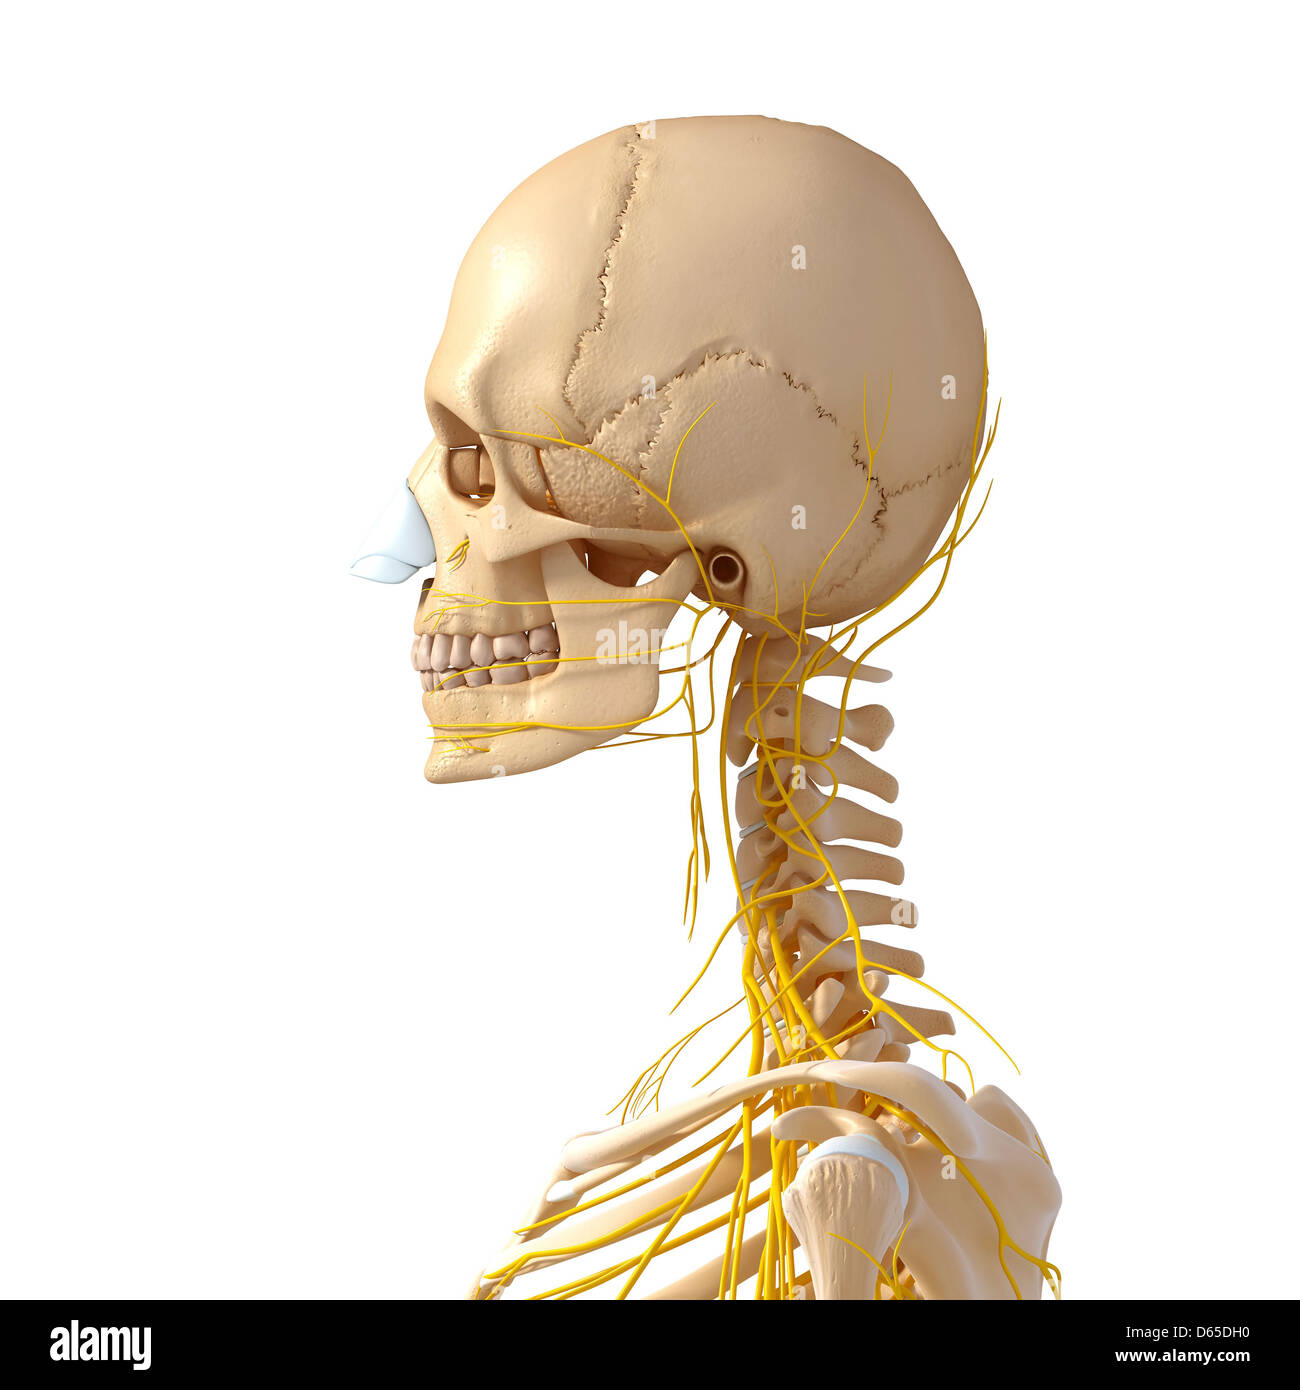 Head And Neck Anatomy Stockfotos & Head And Neck Anatomy Bilder - Alamy